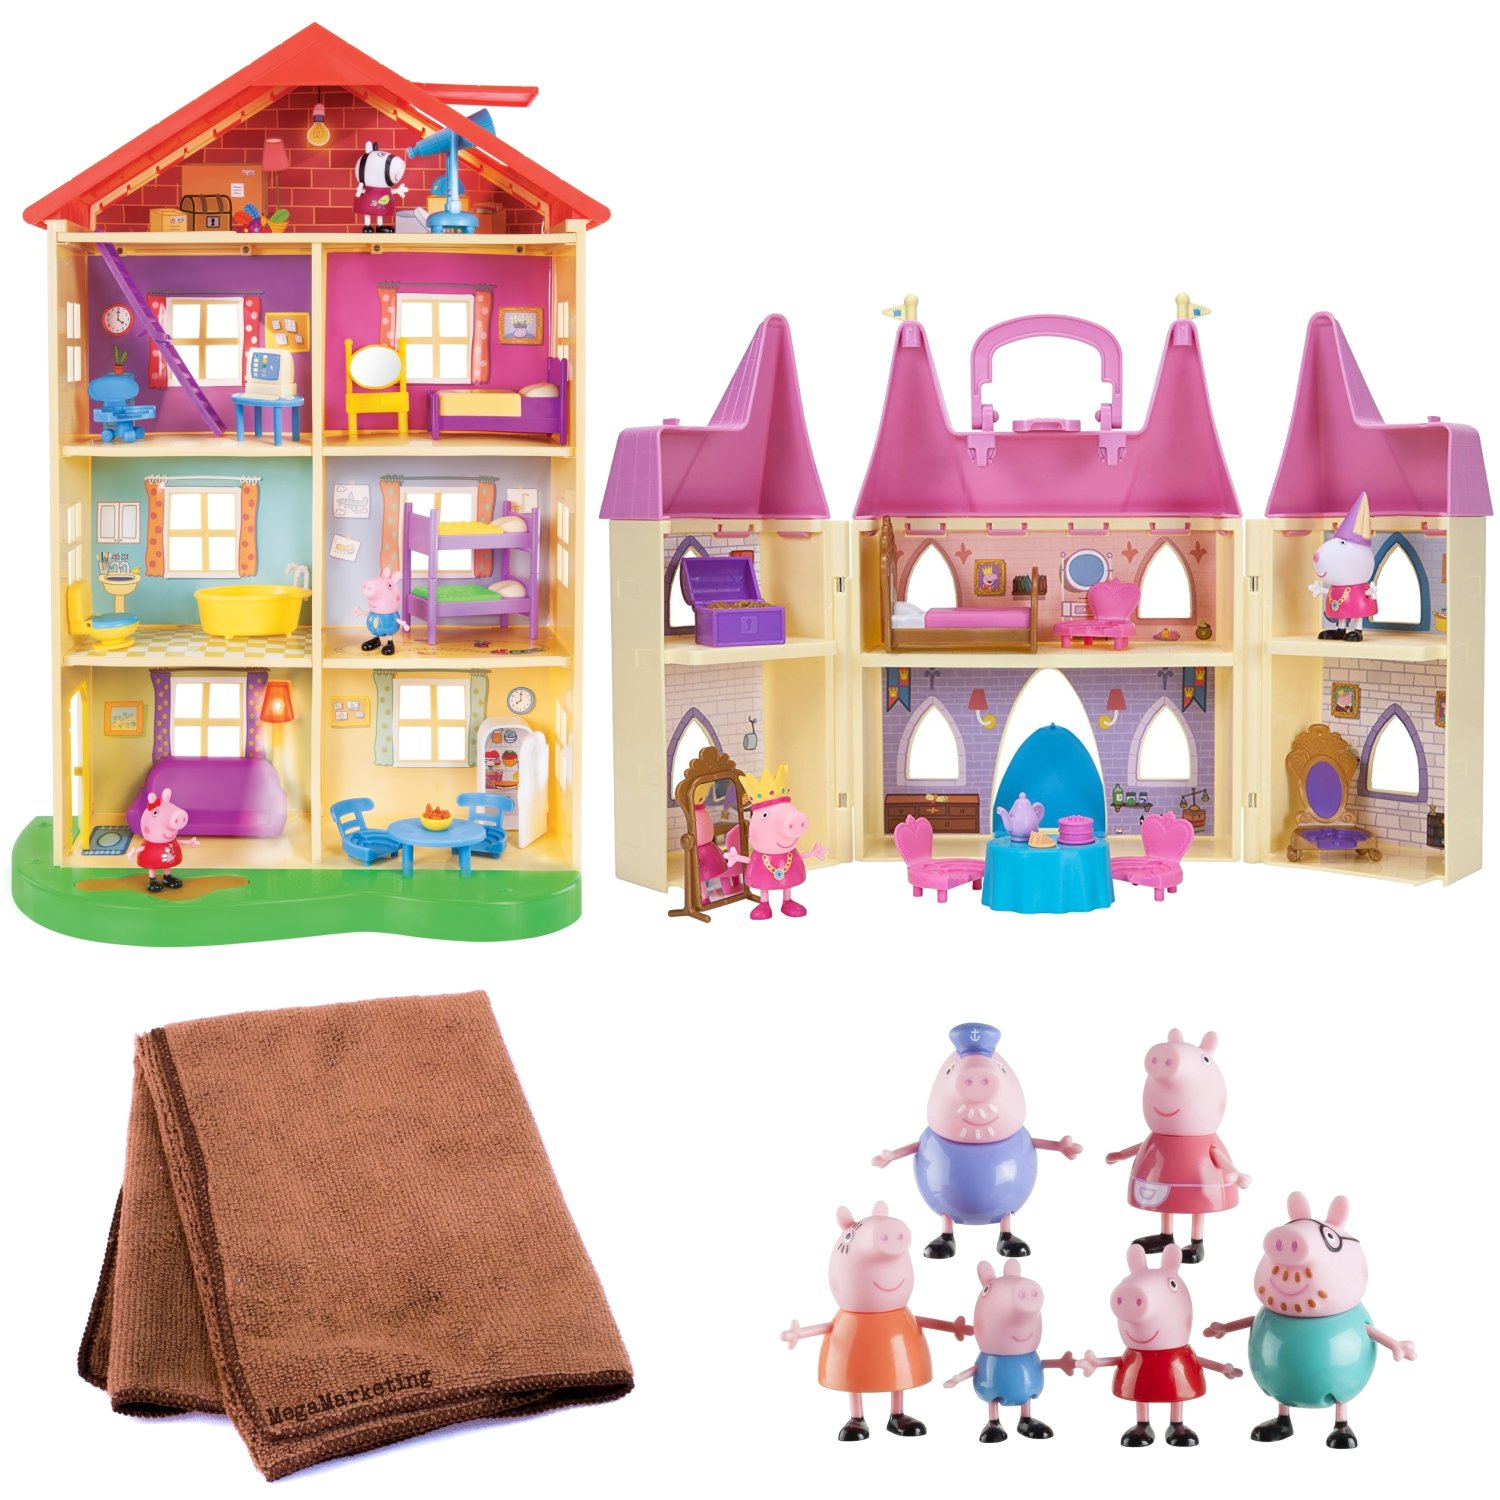 Peppa Pig Princess Castle Playset, Peppa Pig Light and Sounds Family Home, and 6-Piece Peppa Pig Family Figures, Bundle with Cleaning Cloth